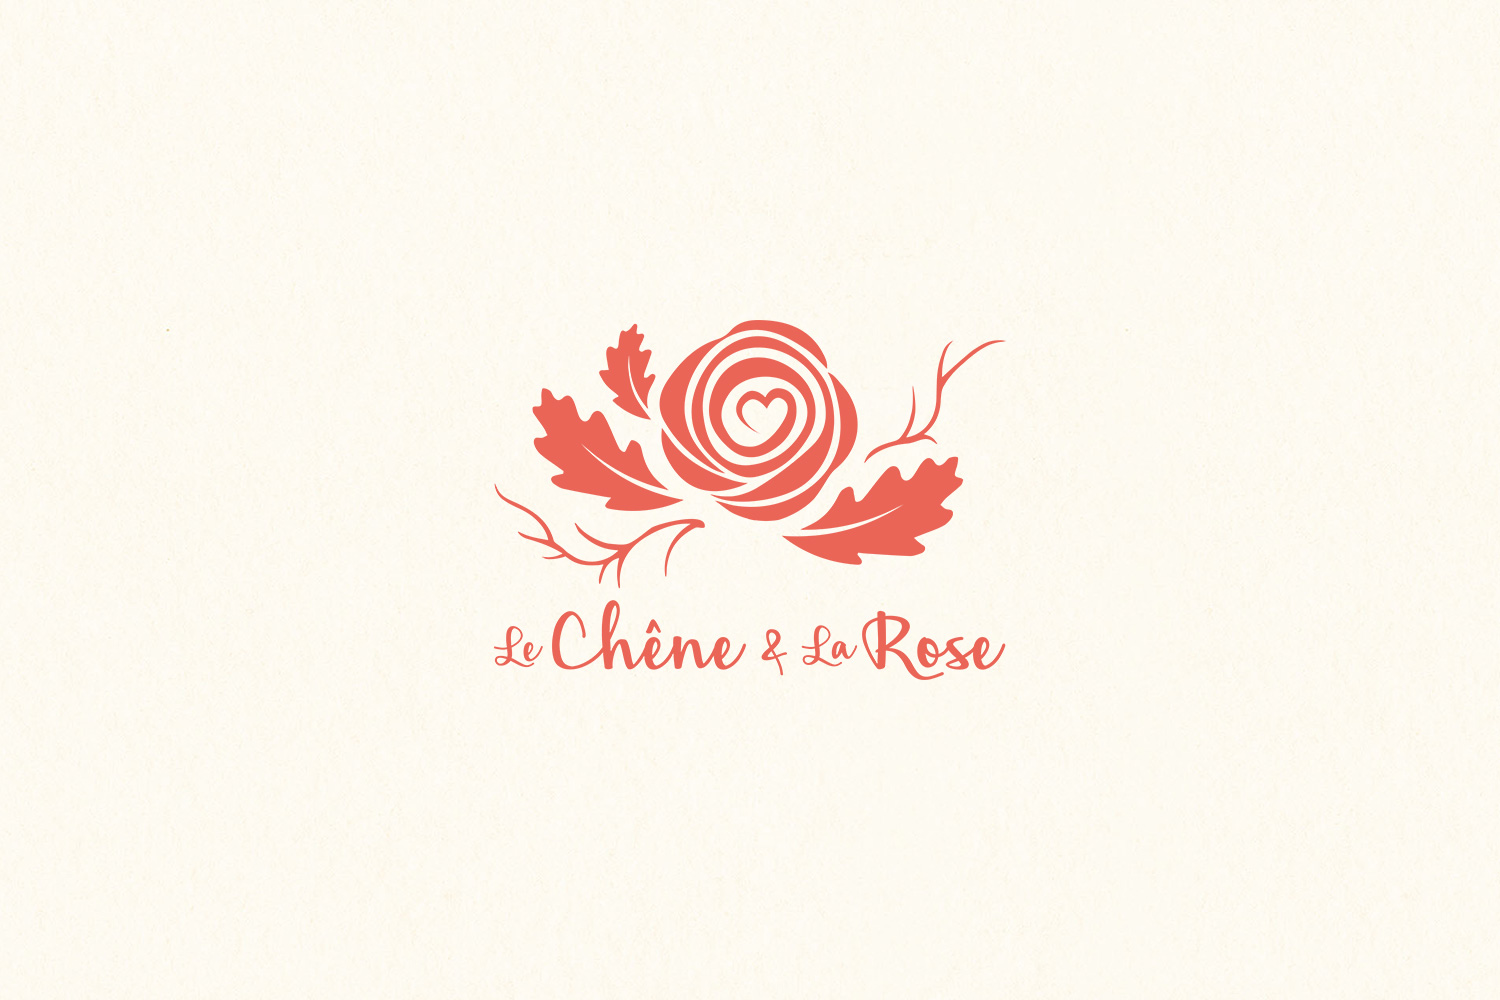 Logotype brand branding identity Le Chene & la Rose wedding photography filmmaking annecy